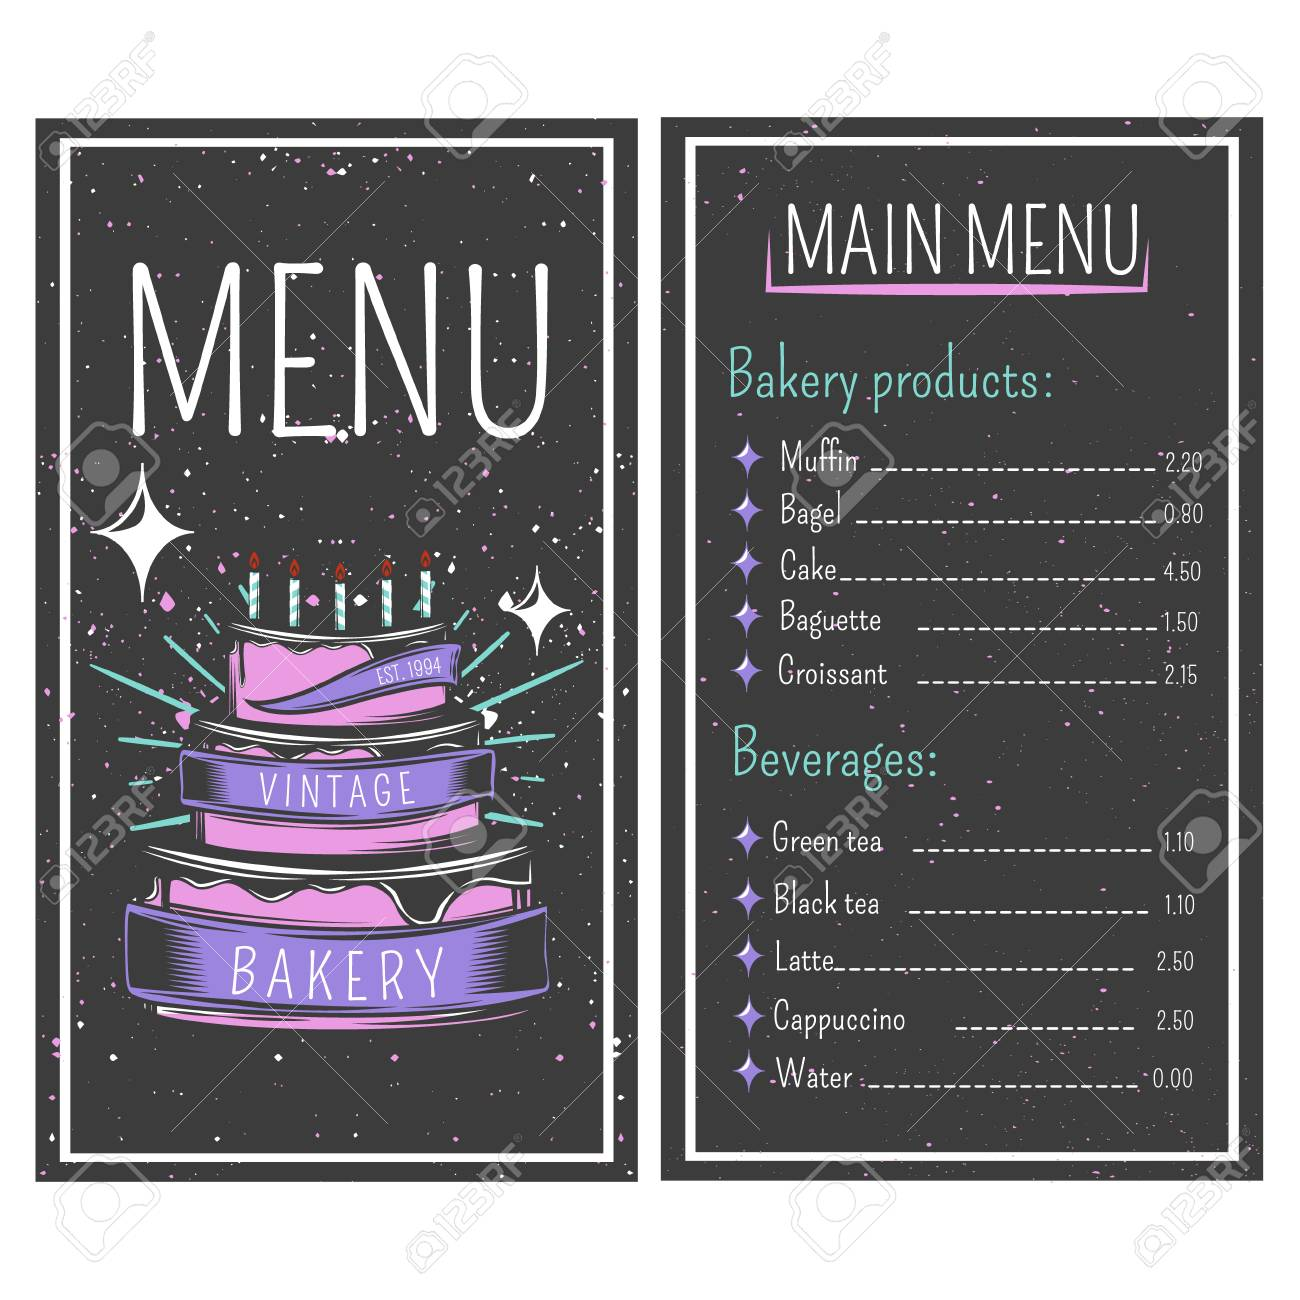 Bakery menu with flour products and beverages on black background bakery menu with flour products and beverages on black background with stains vintage style vector illustration thecheapjerseys Images